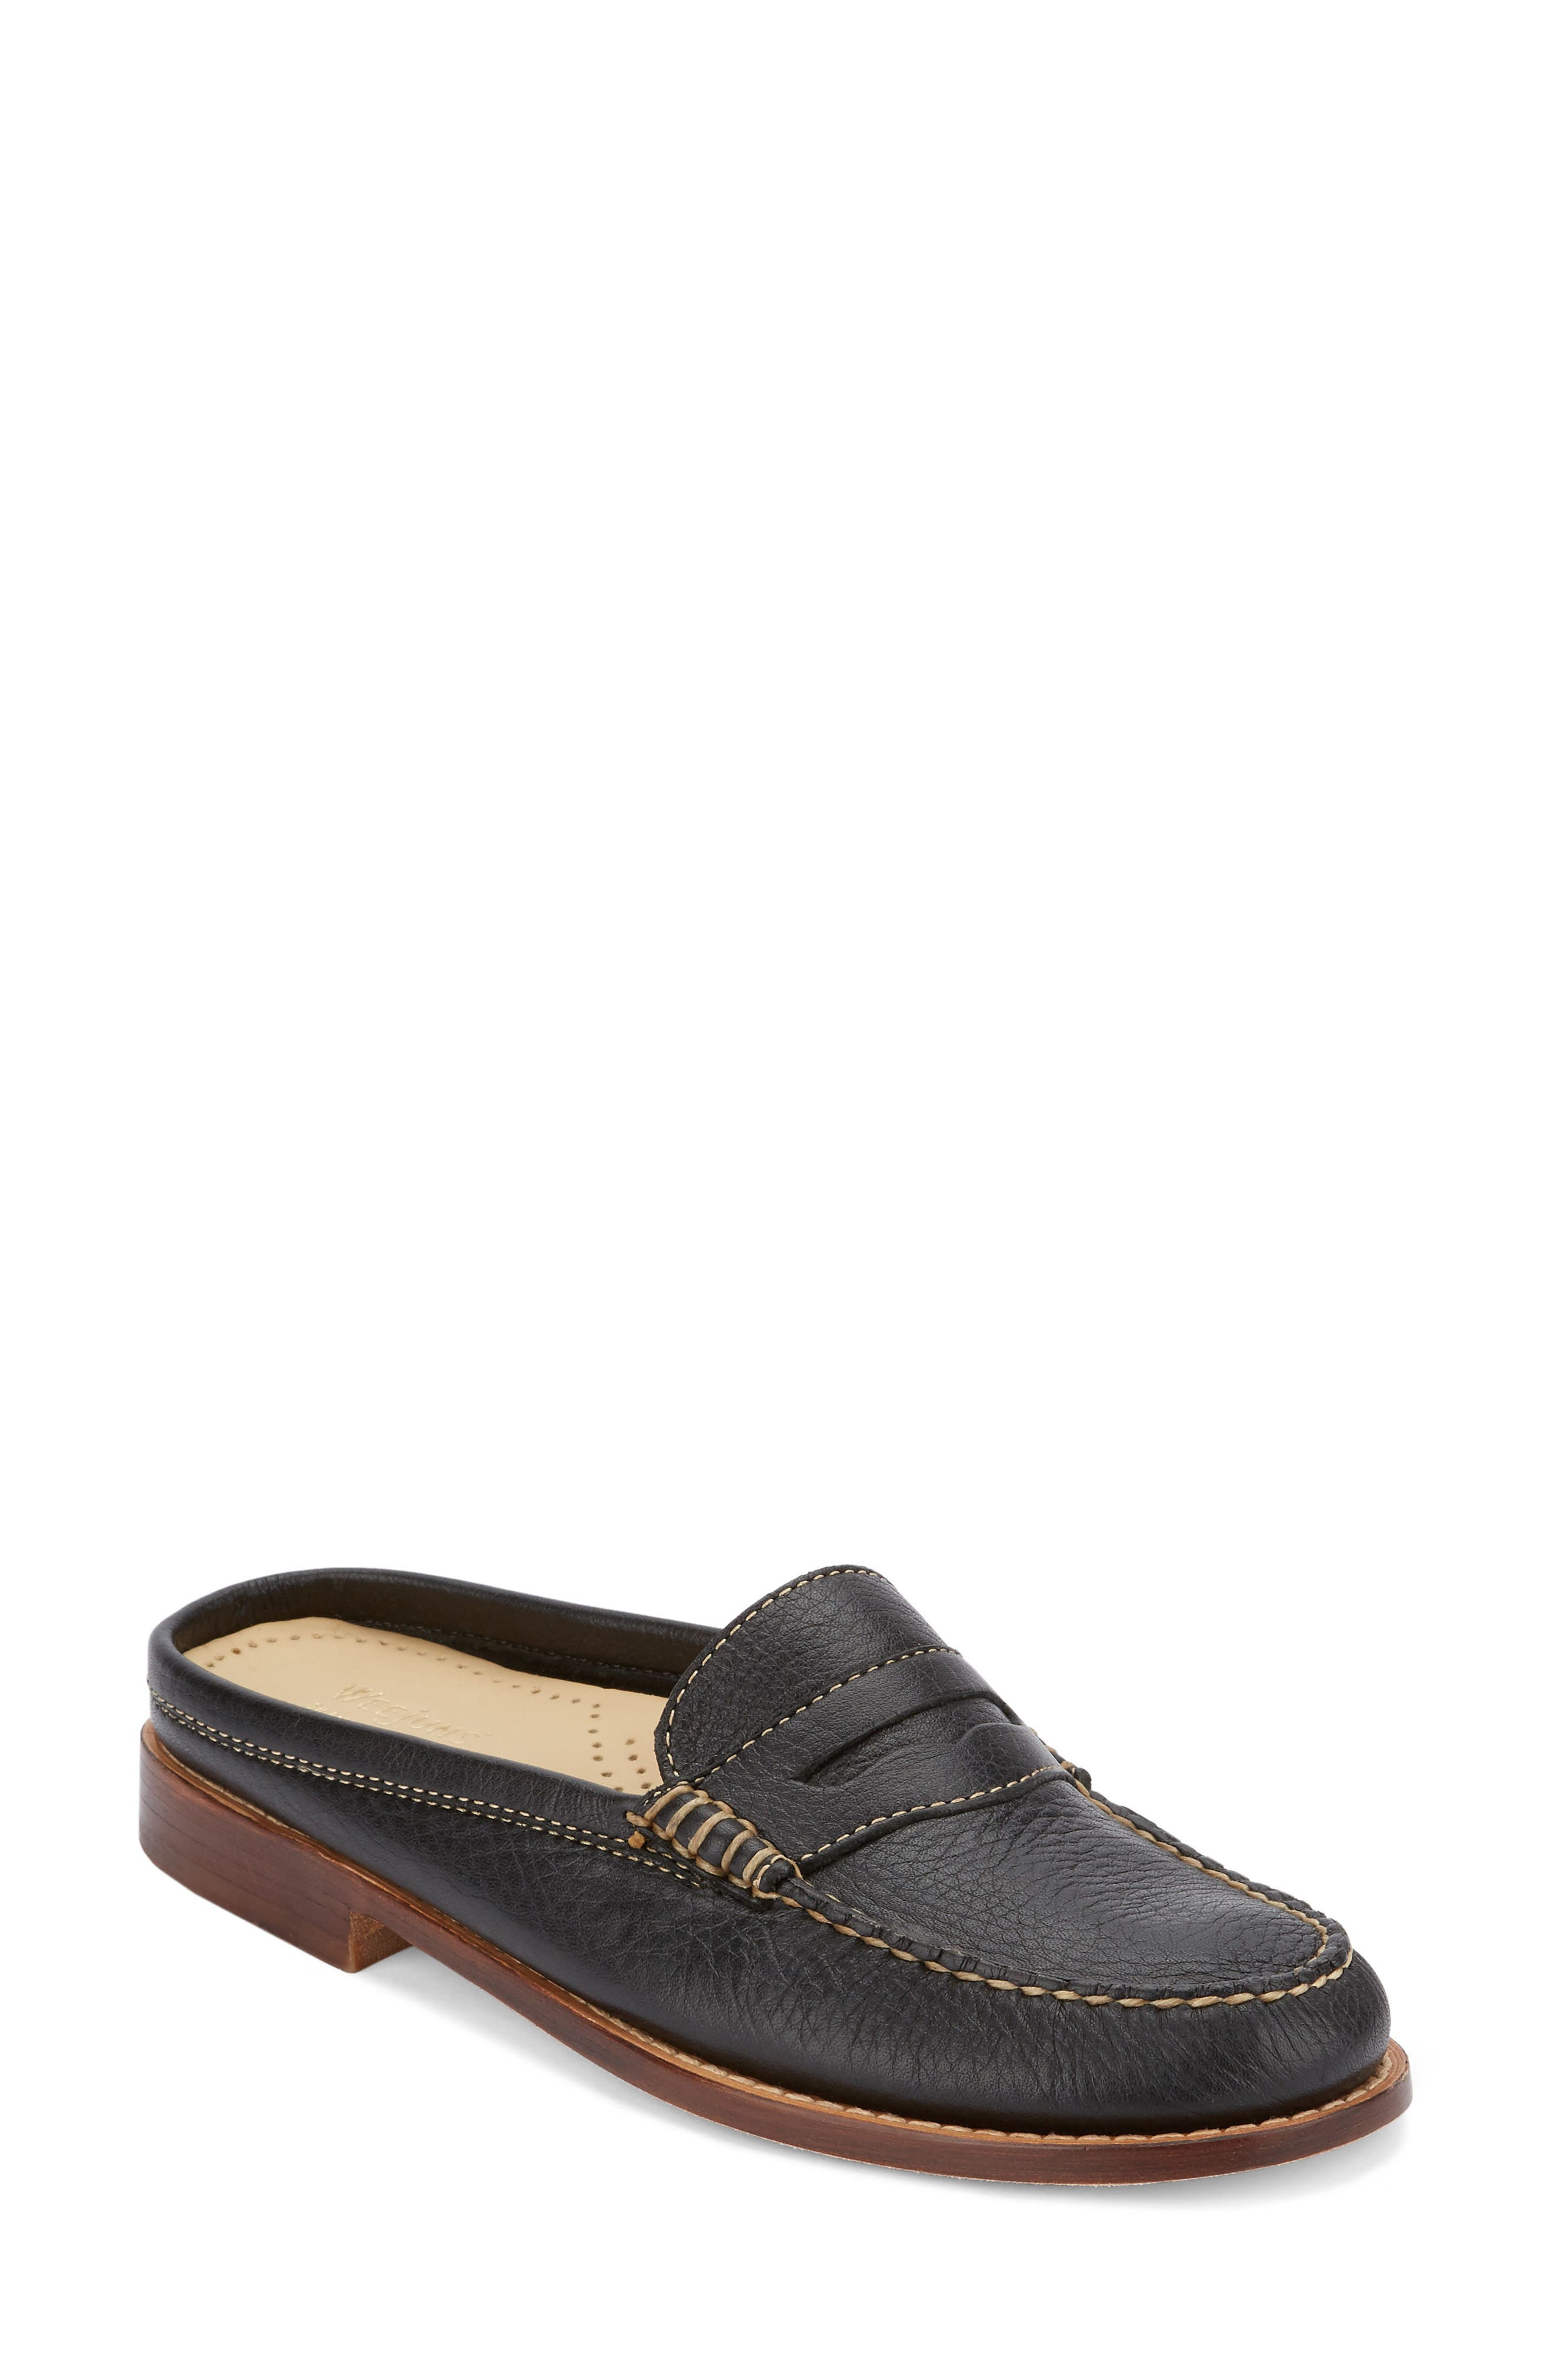 Wynn Loafer Mule,                         Main,                         color, 002